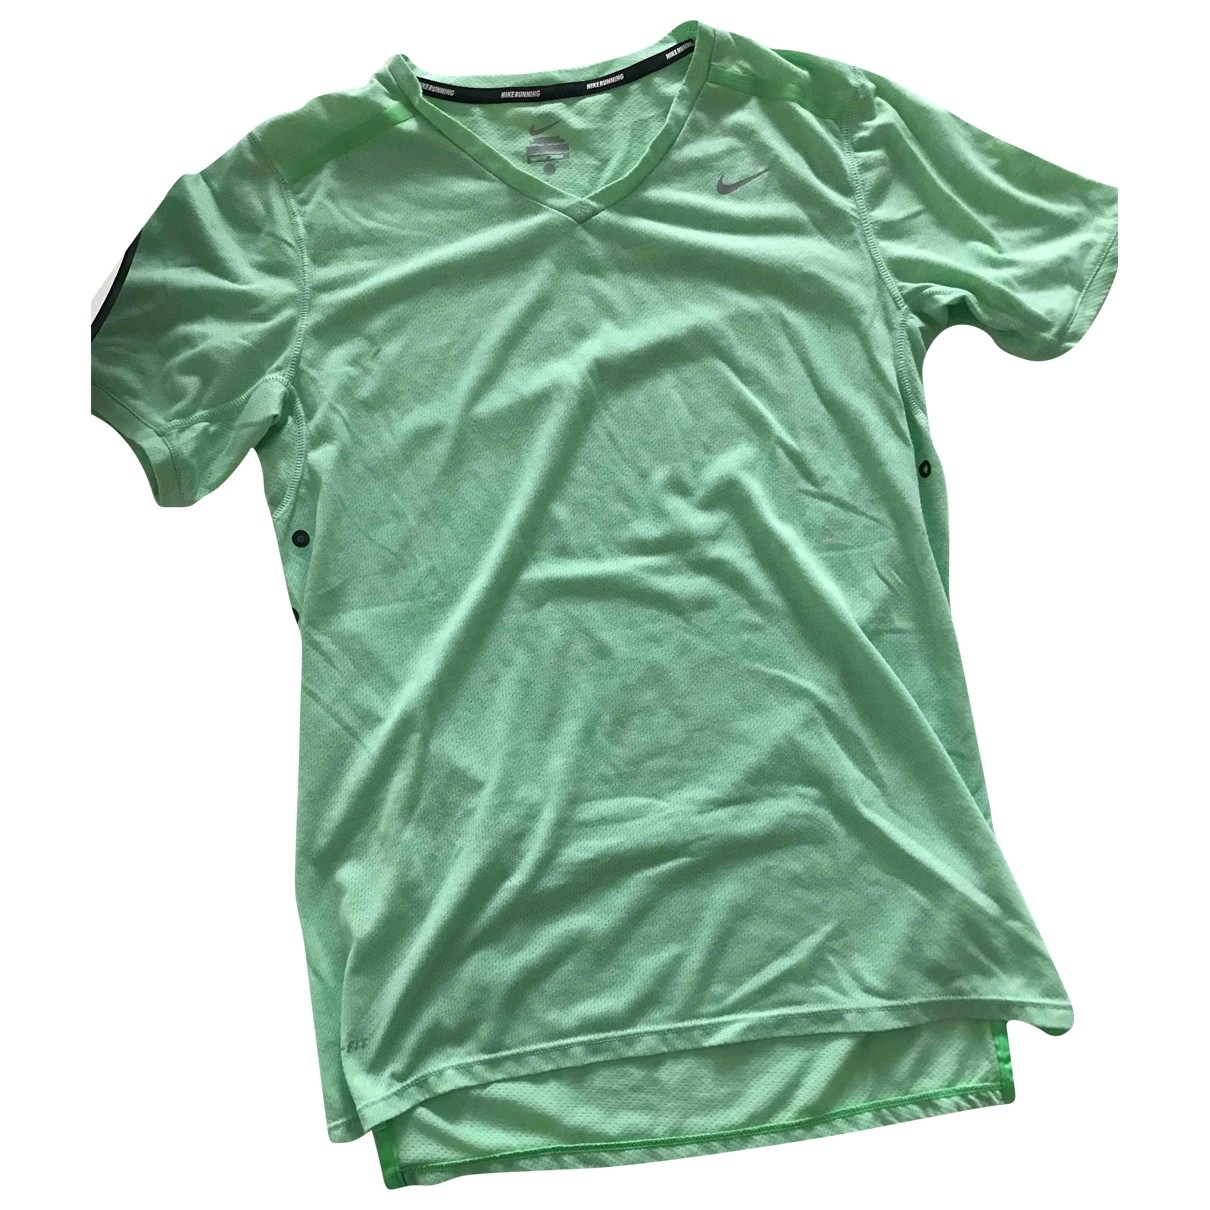 Nike - Tee shirts   pour homme - vert